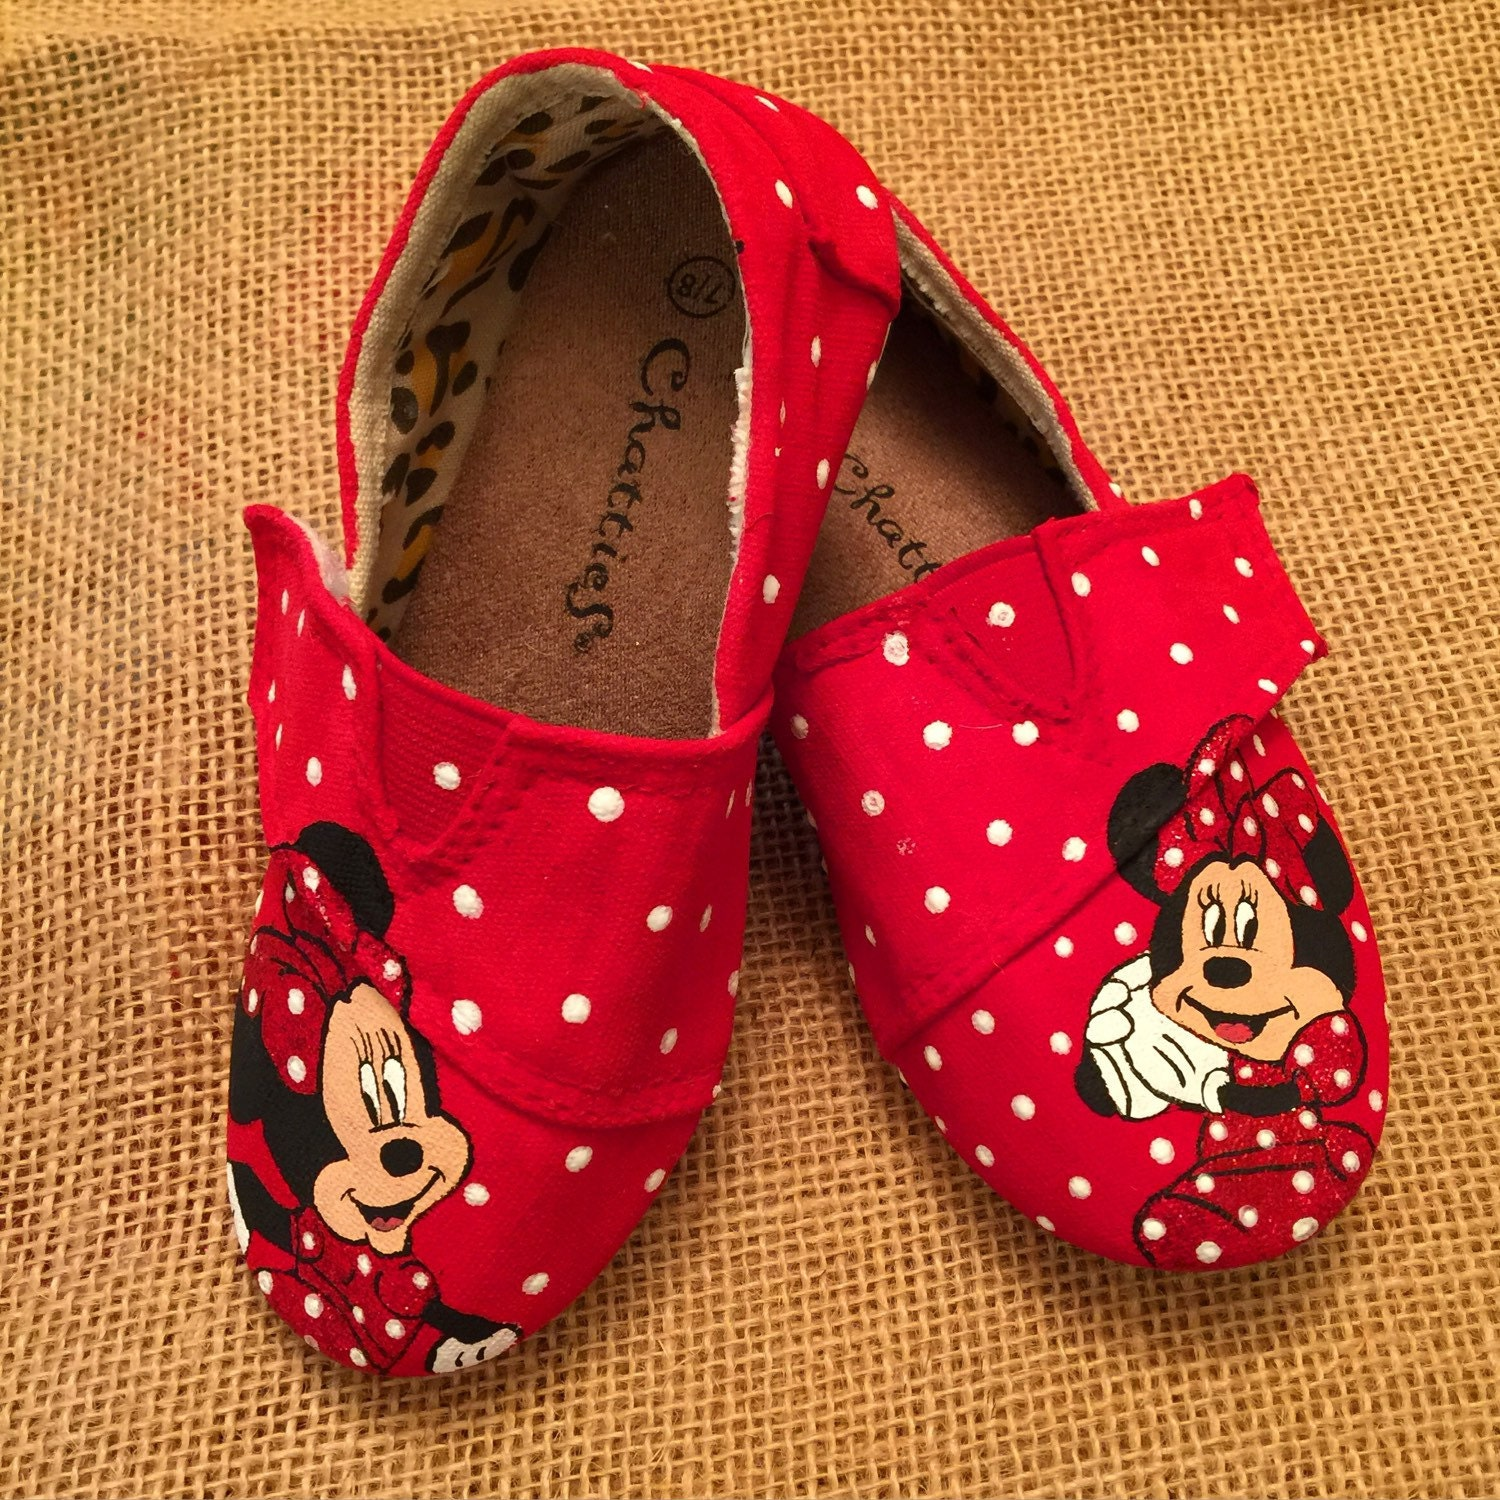 Baby Minnie Mouse Shoes - results from brands Disney, Minnie Mouse, Crocs, products like Disney Minnie Mouse Collapsible Storage Square Pop Hamper, Pink, Disney Minnie Collapsible Pop up Hamper , Minnie Mouse Black & Pink Bow-Accent Slipper - Infant.